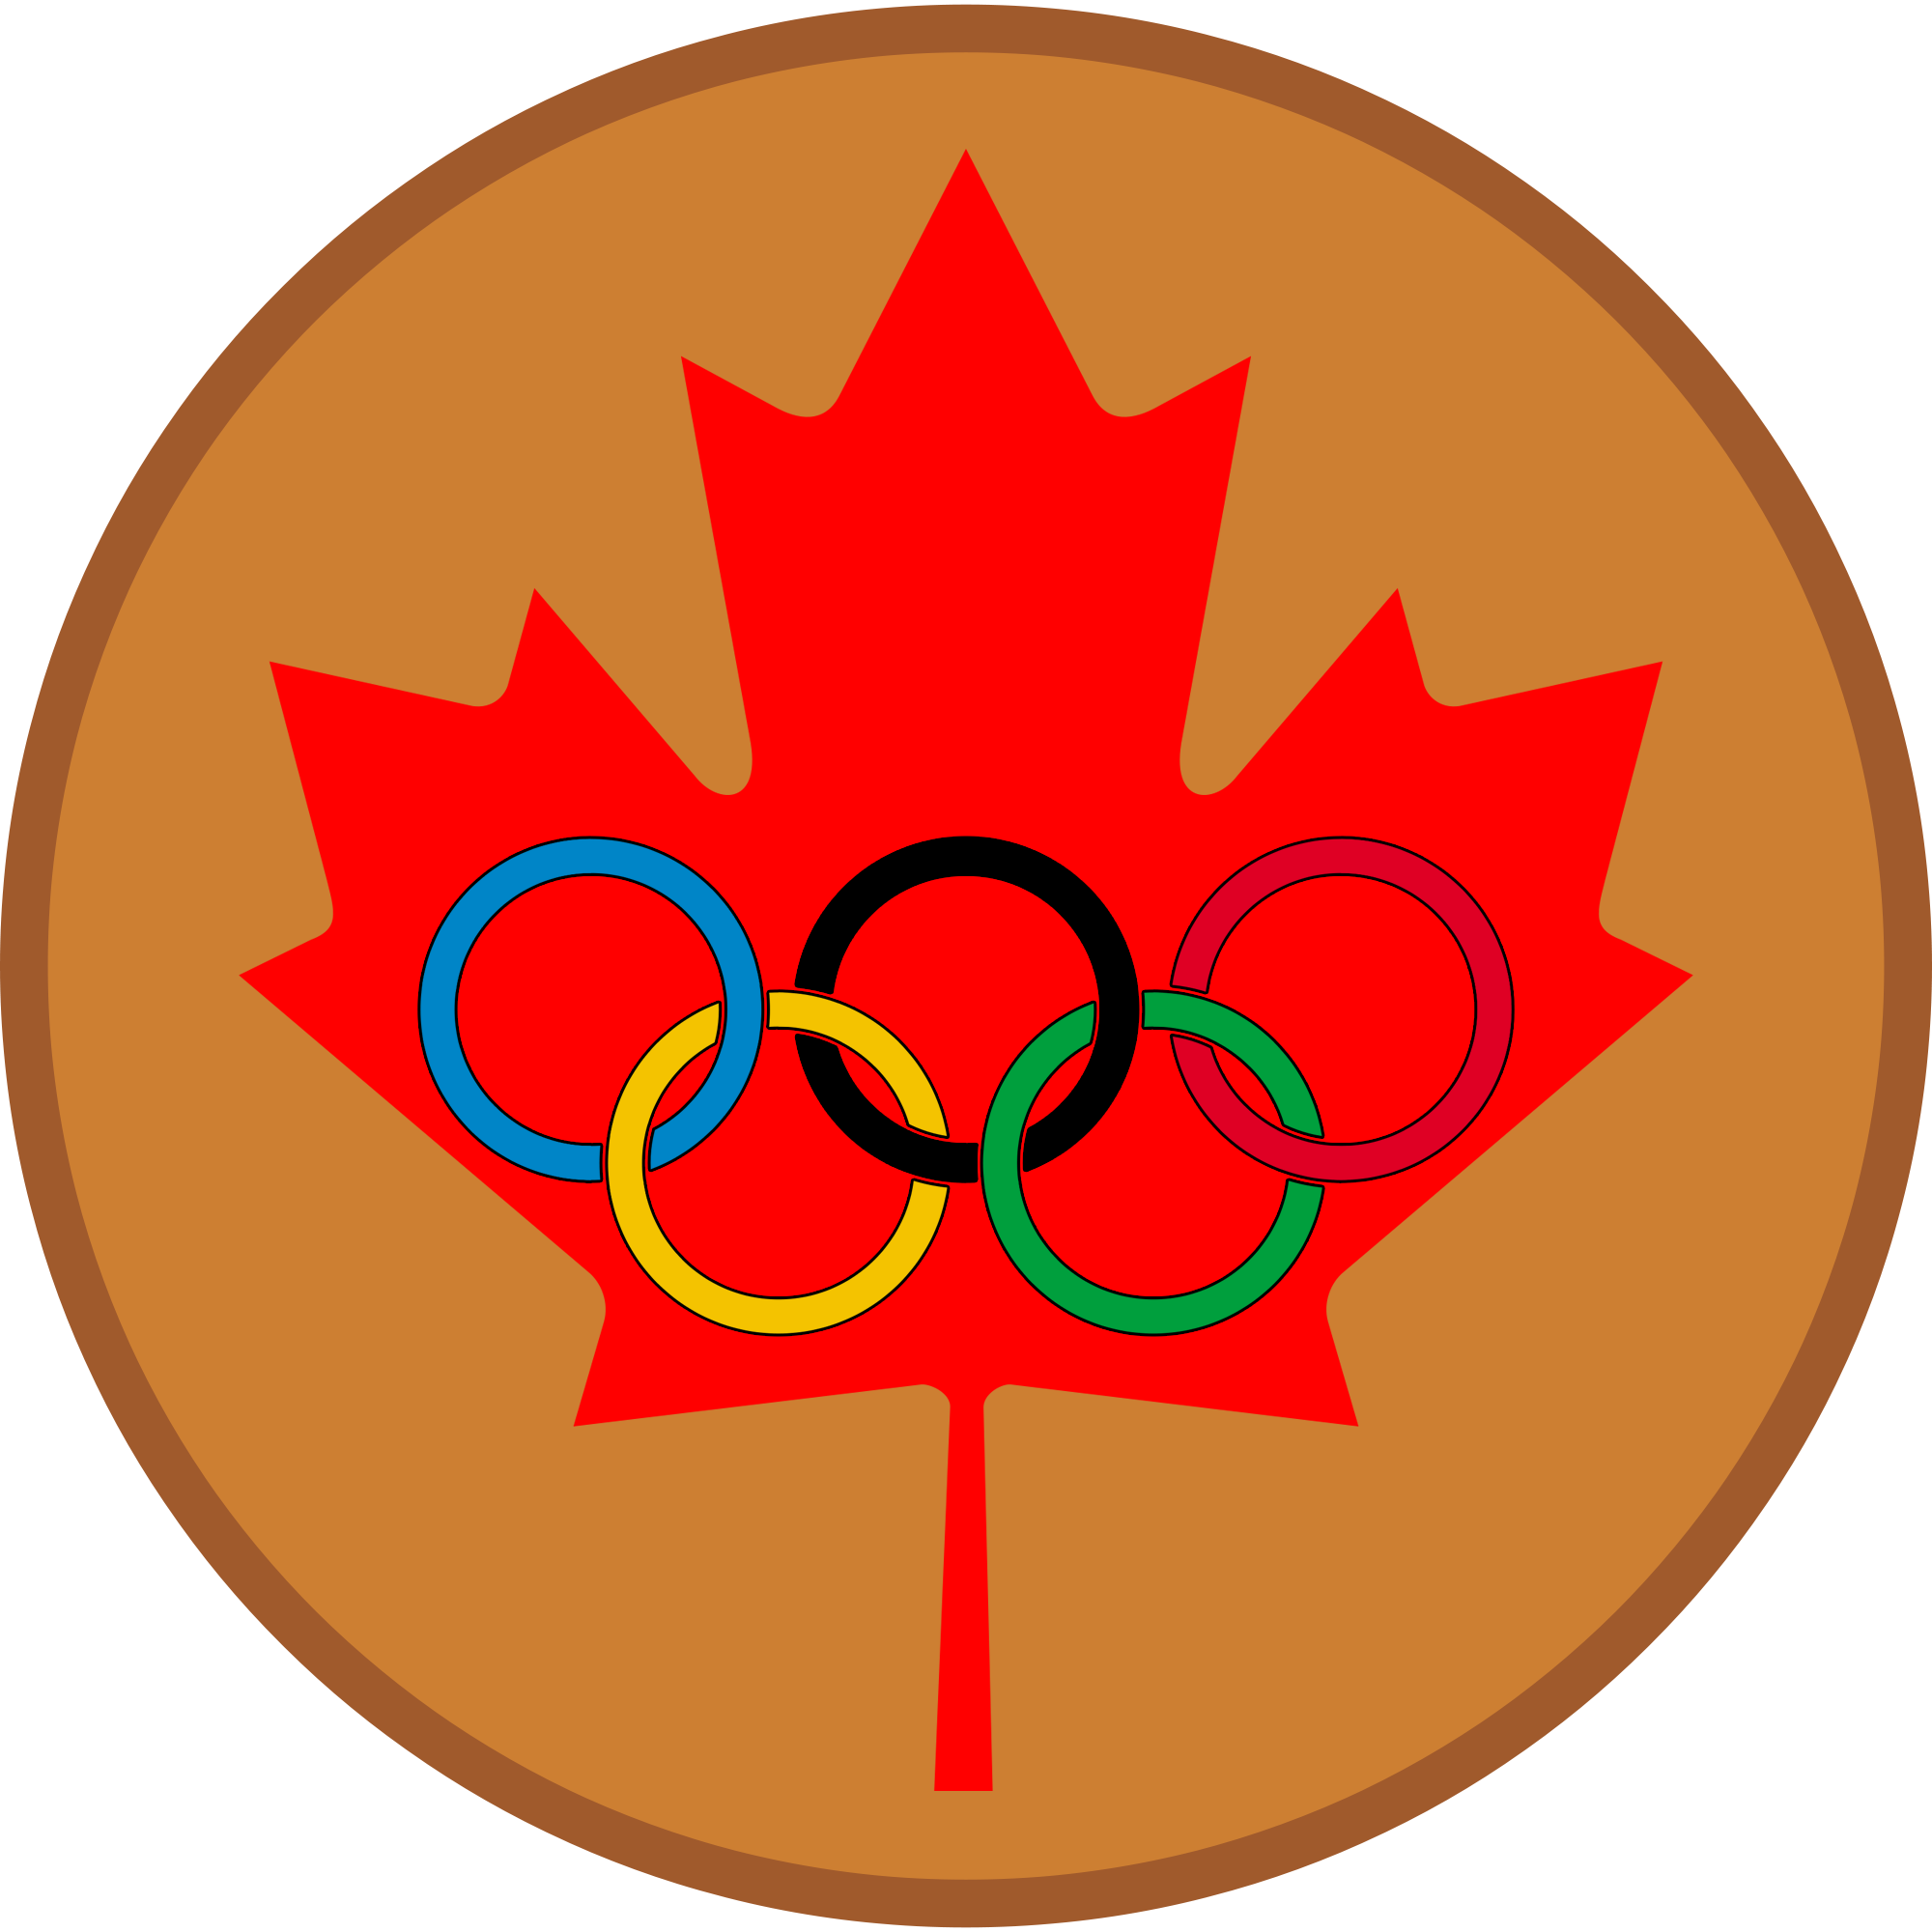 Medal clipart bronze. File maple leaf olympic